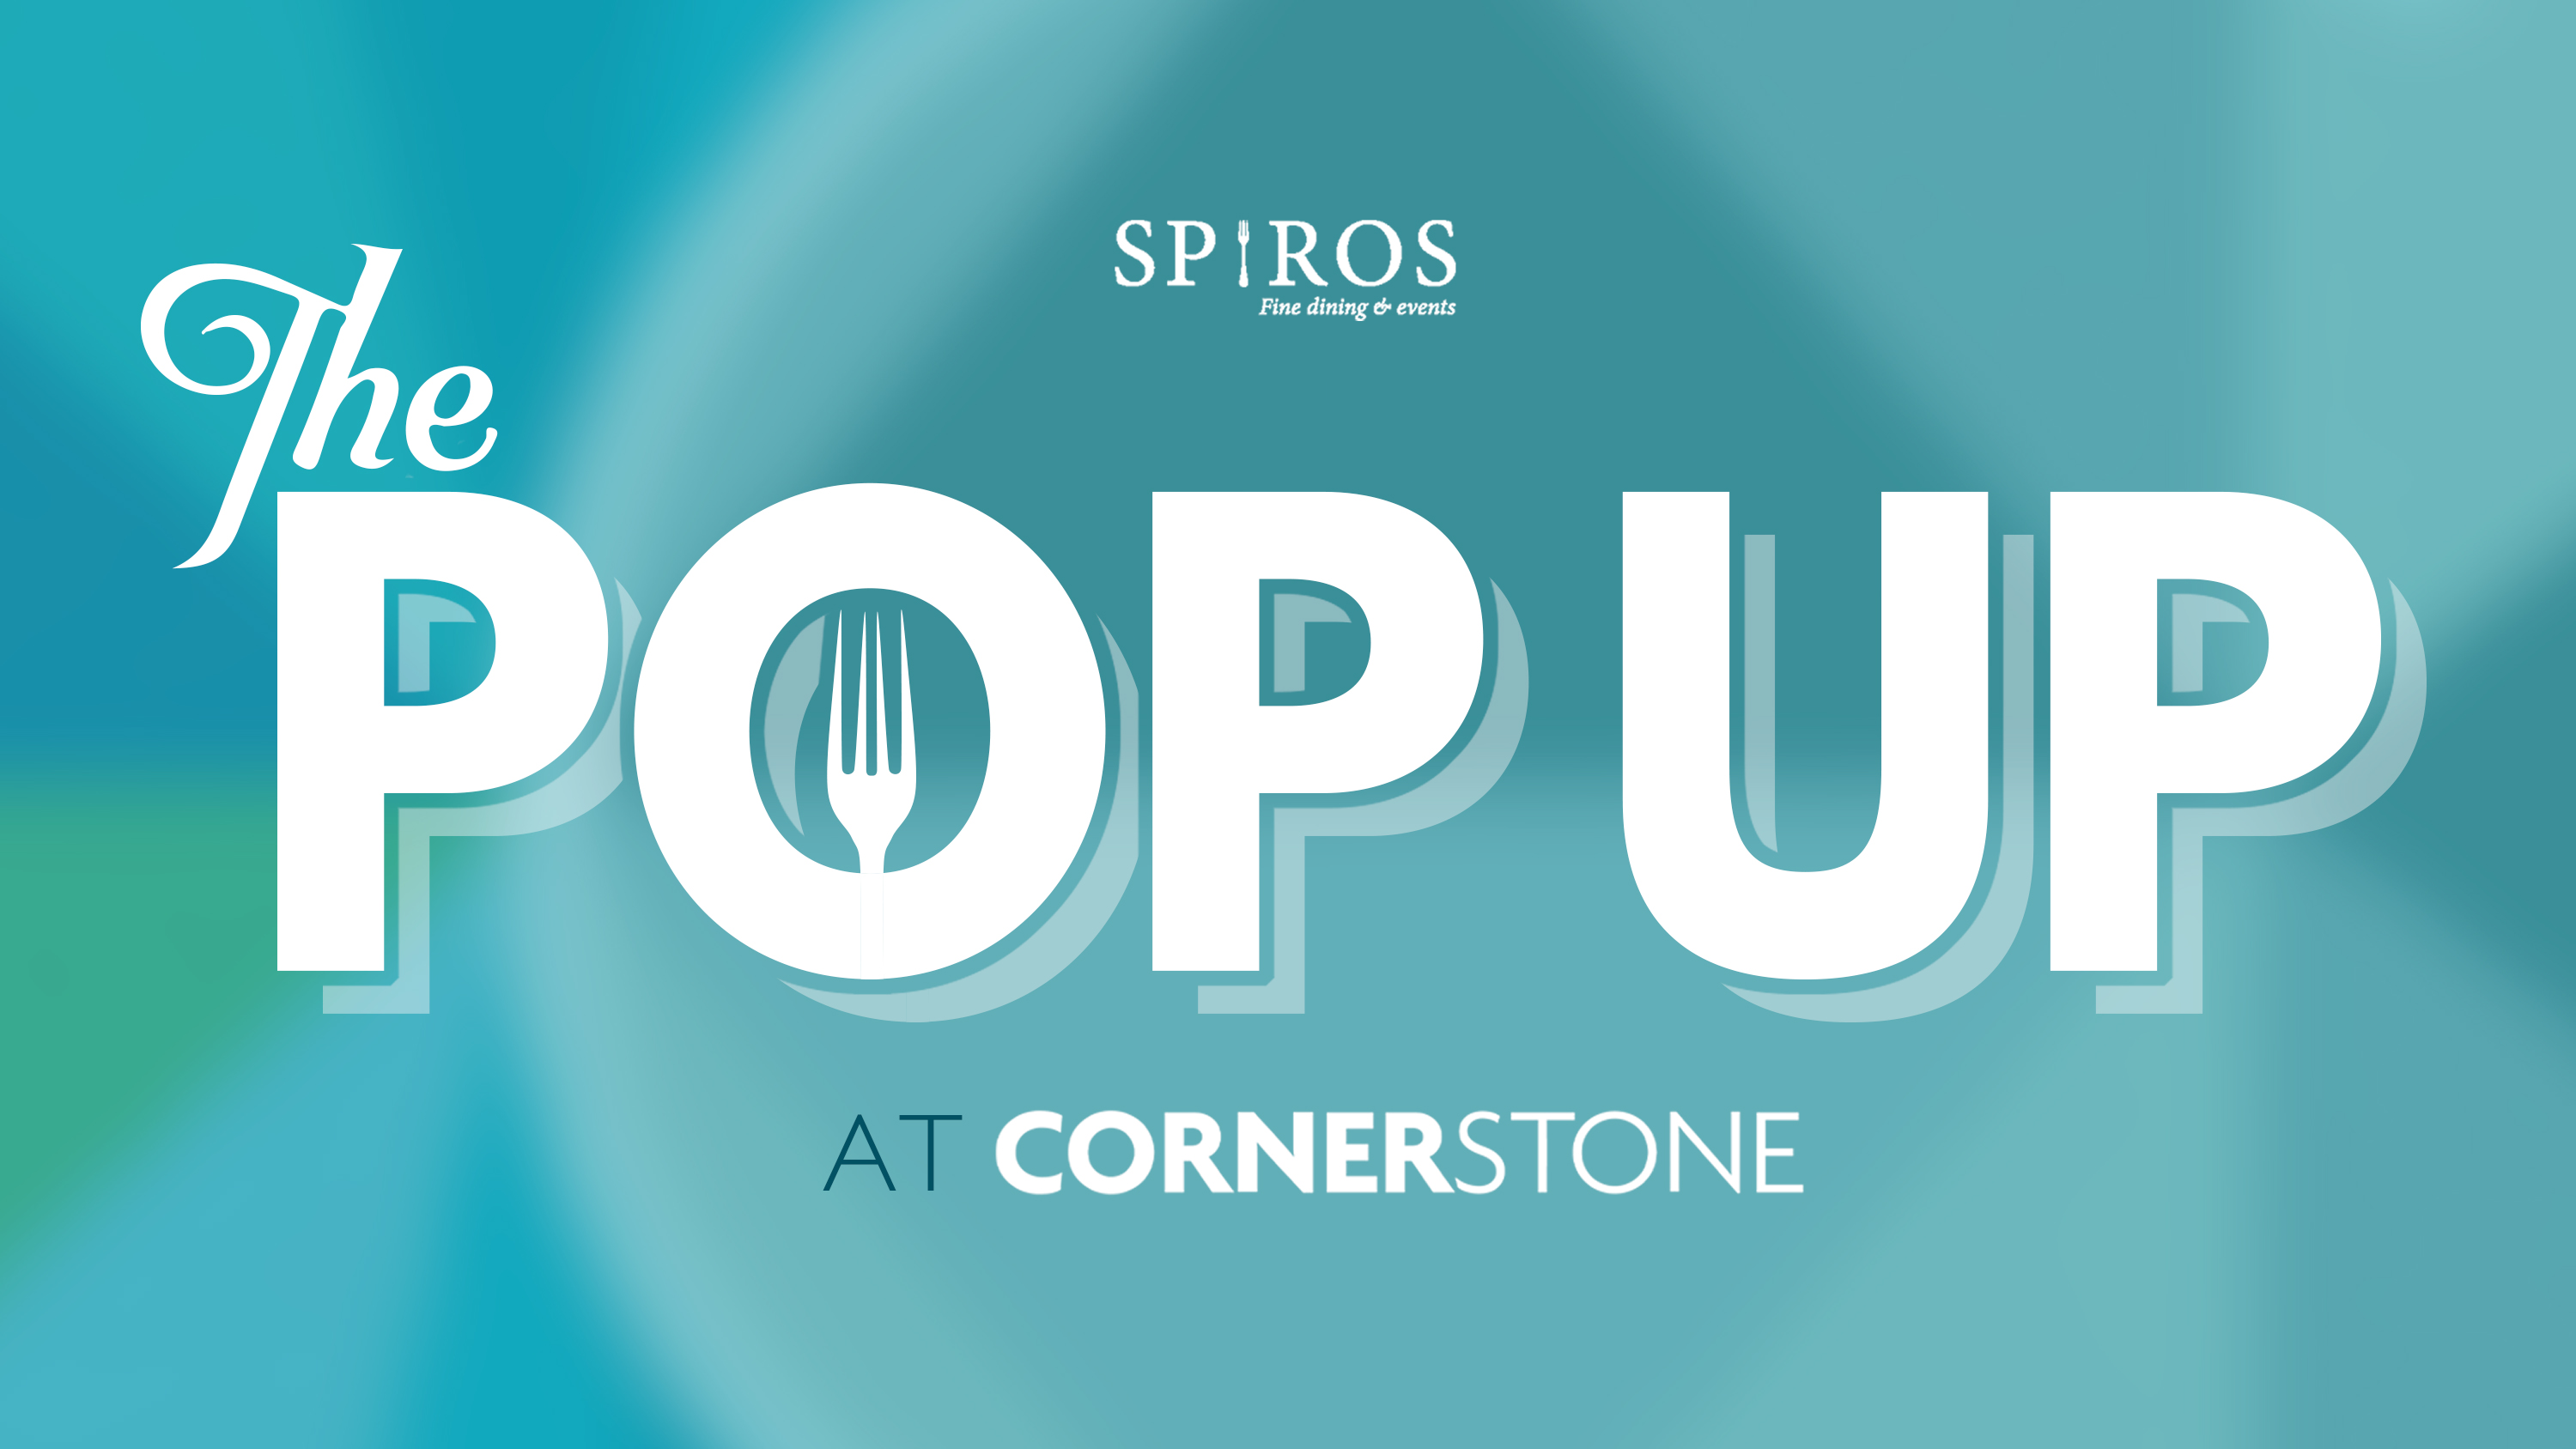 What happened at our first Pop Up event with Stephen Terry…